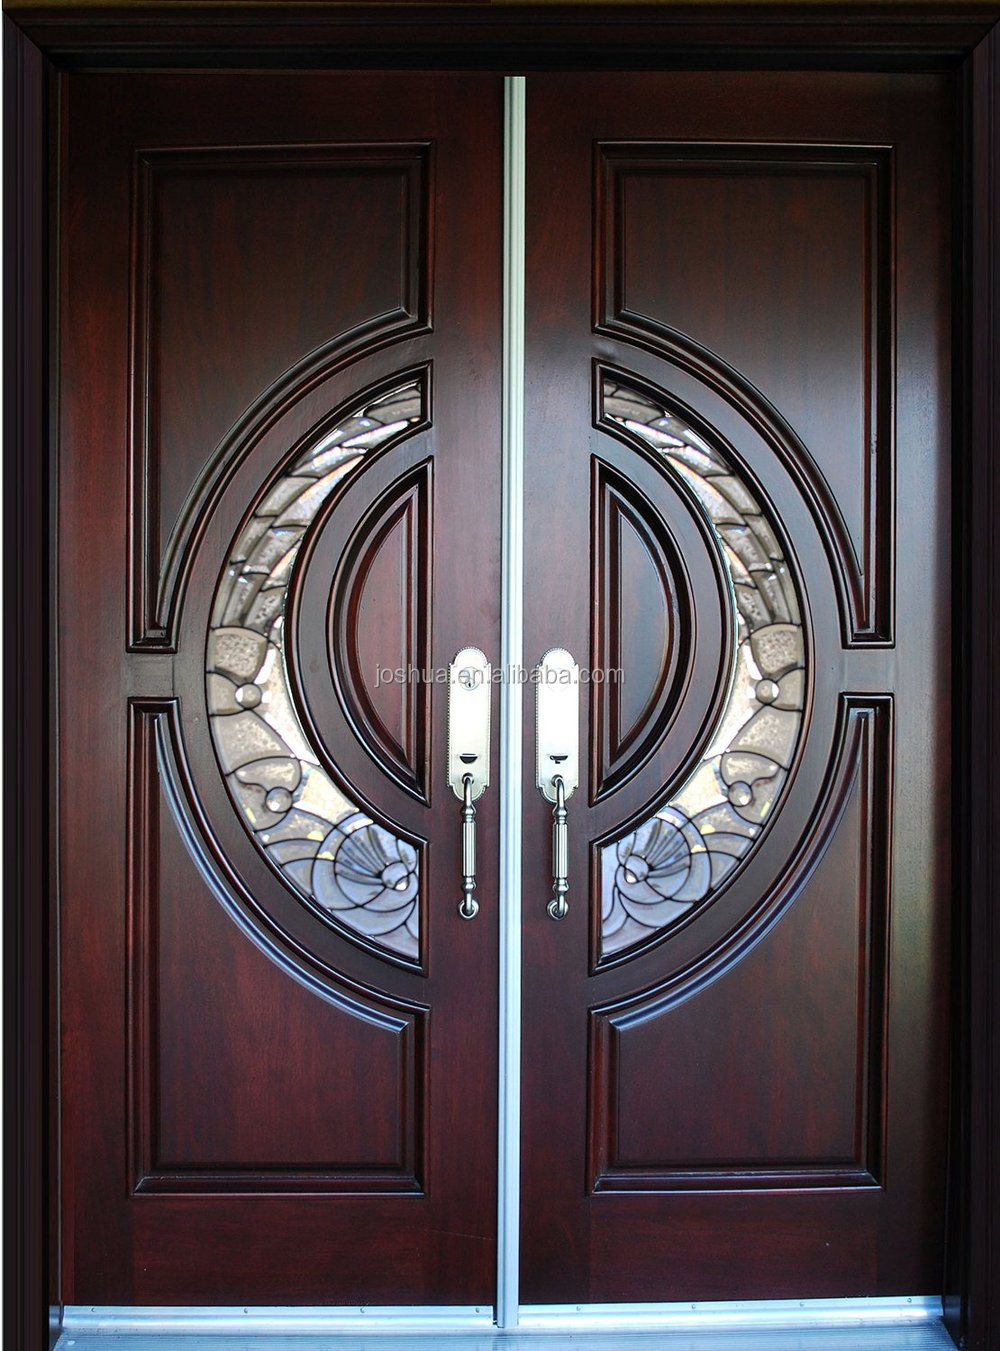 100% exterior Mahogany Tiffany frosted triple pane glass Wood Door Exterior Front Entry Double House double main wooden door